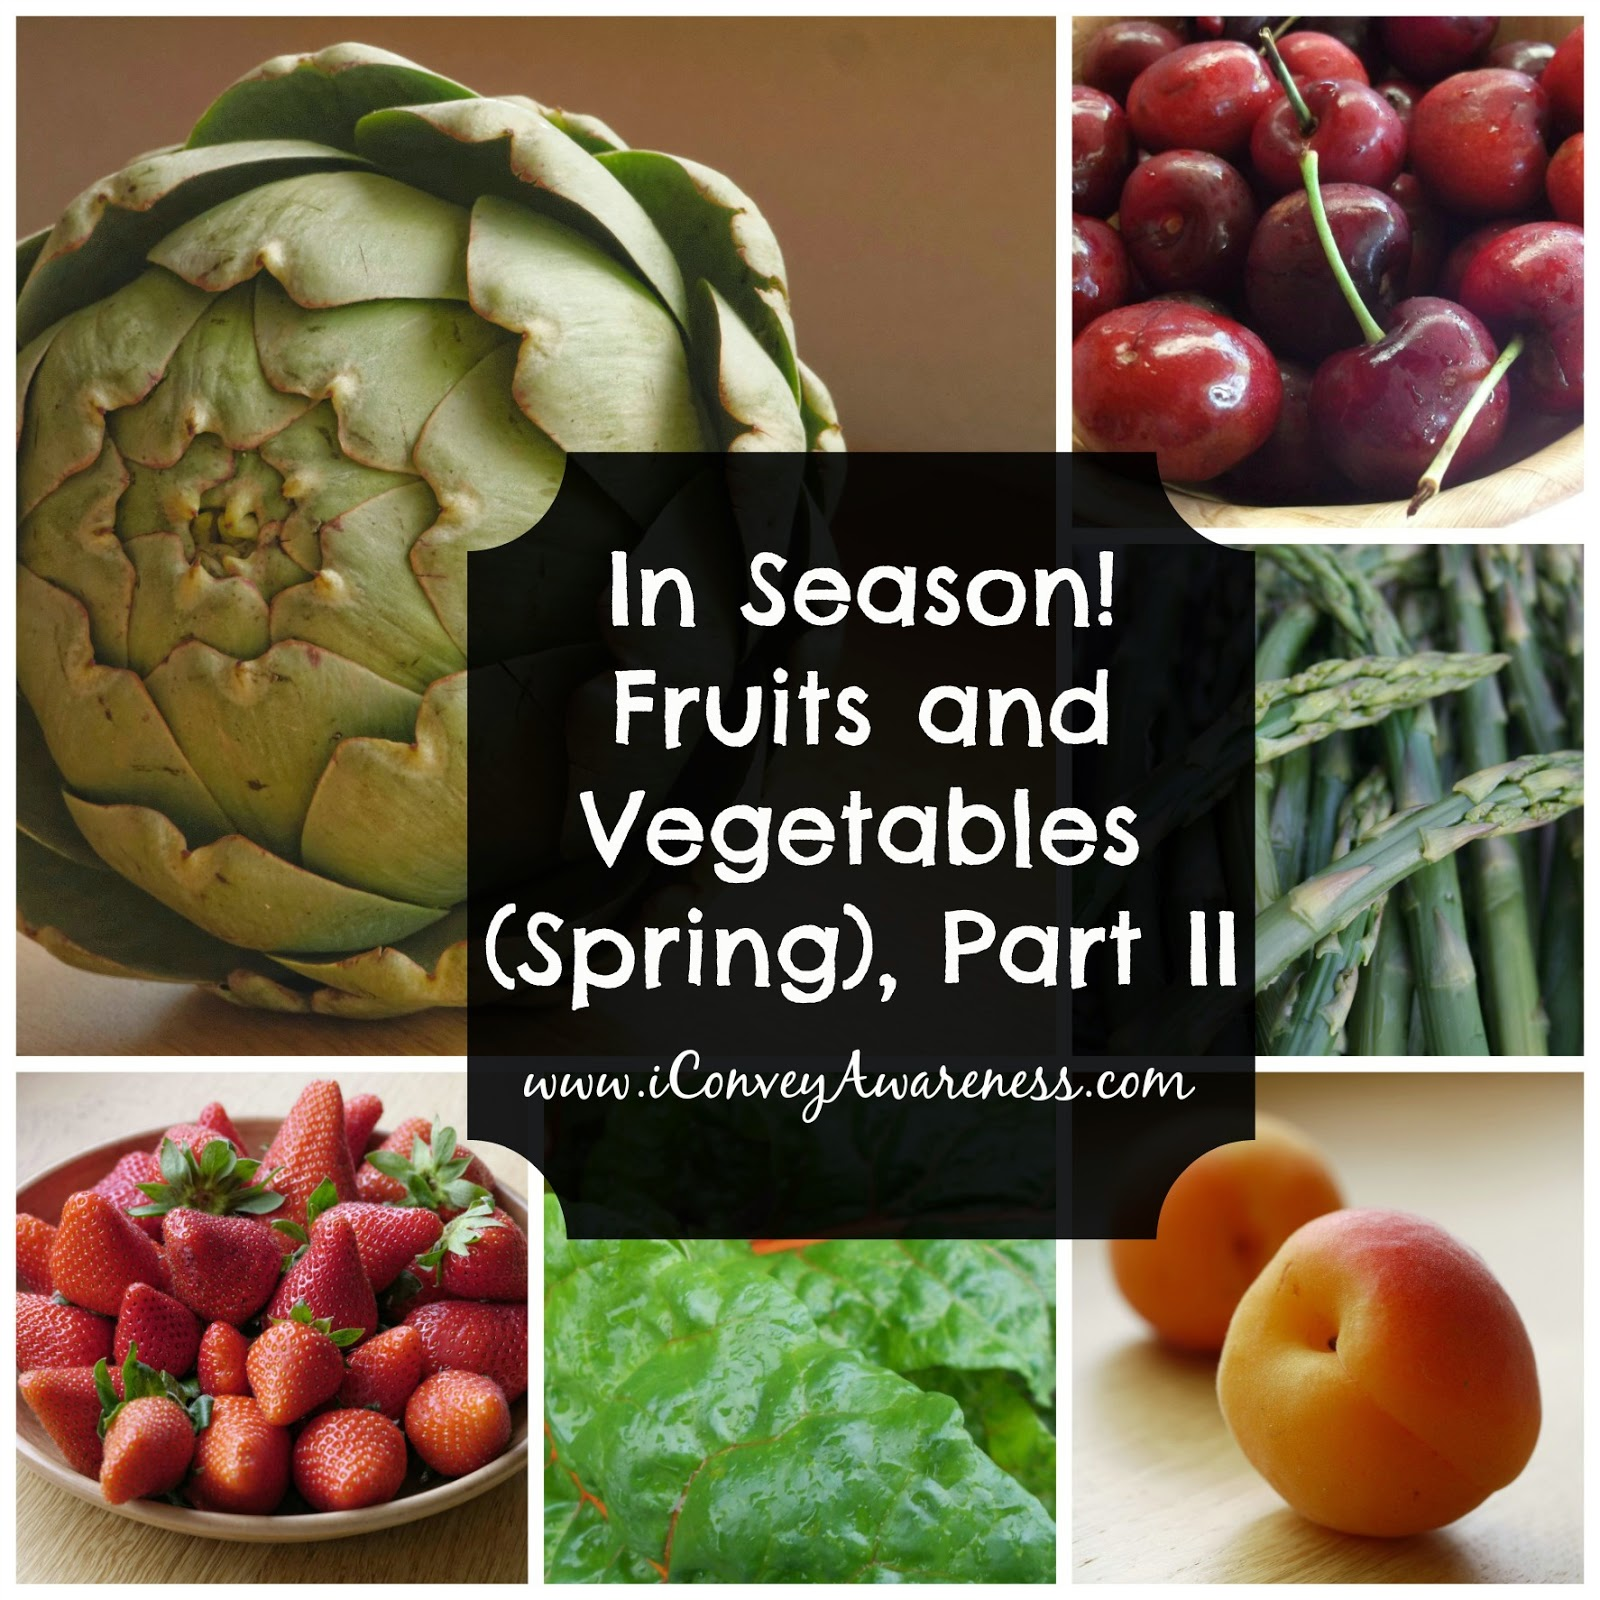 Convey Awareness | In Season! Fruits and Veggies (Spring) Part II